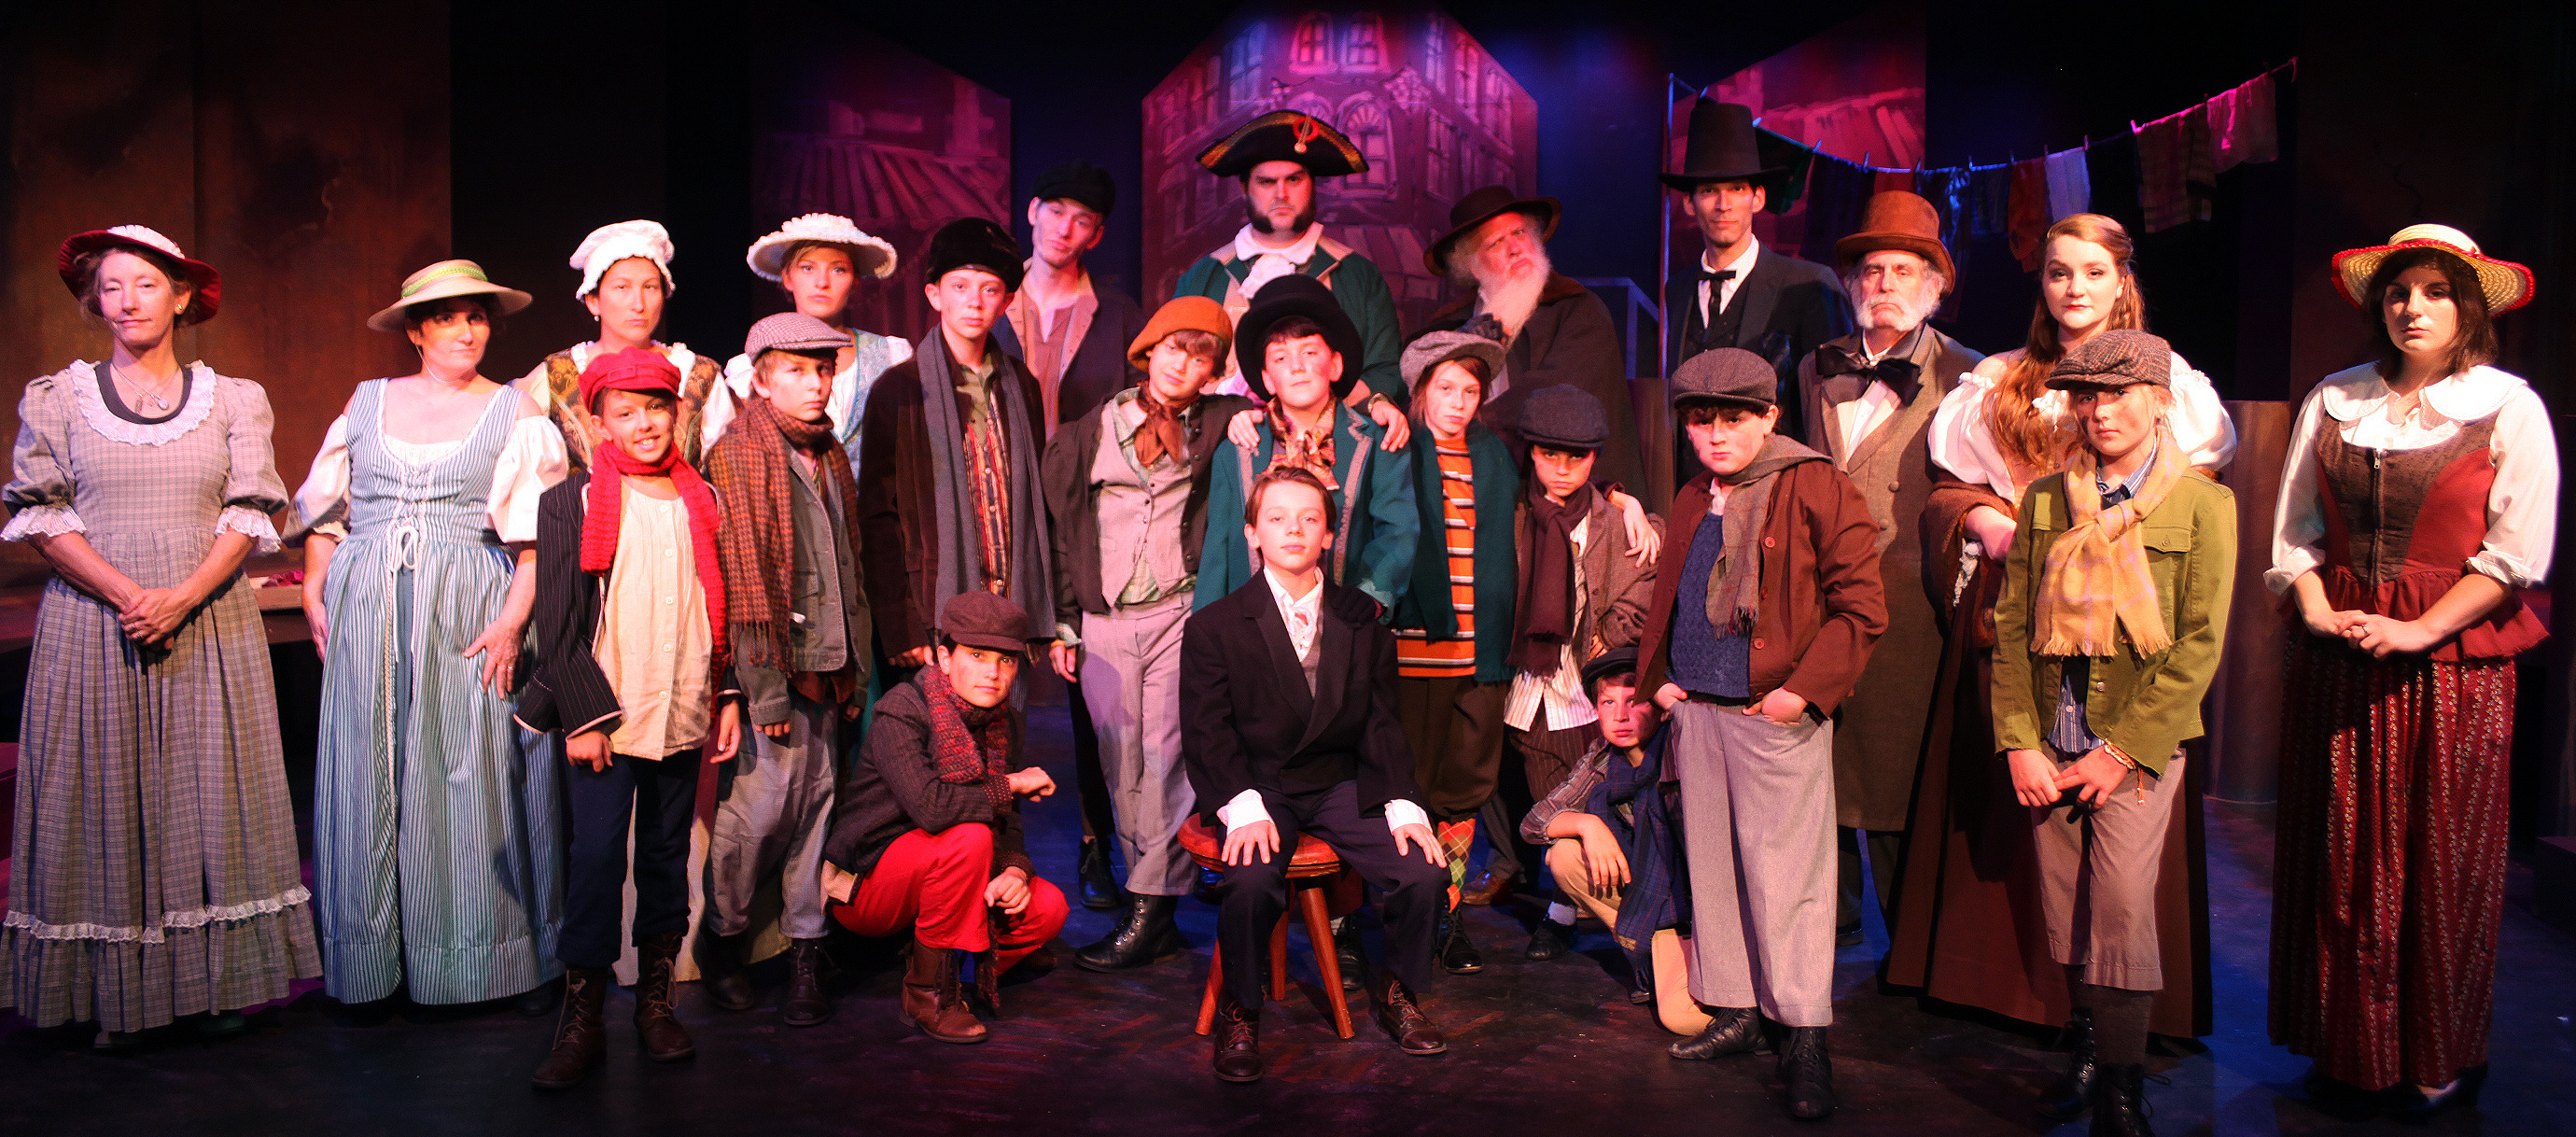 The cast of Oliver!, on stage June 5 through July 6 at Limelight Theatre, 11 Old Mission Ave. Photo by RENEE UNSWORTH